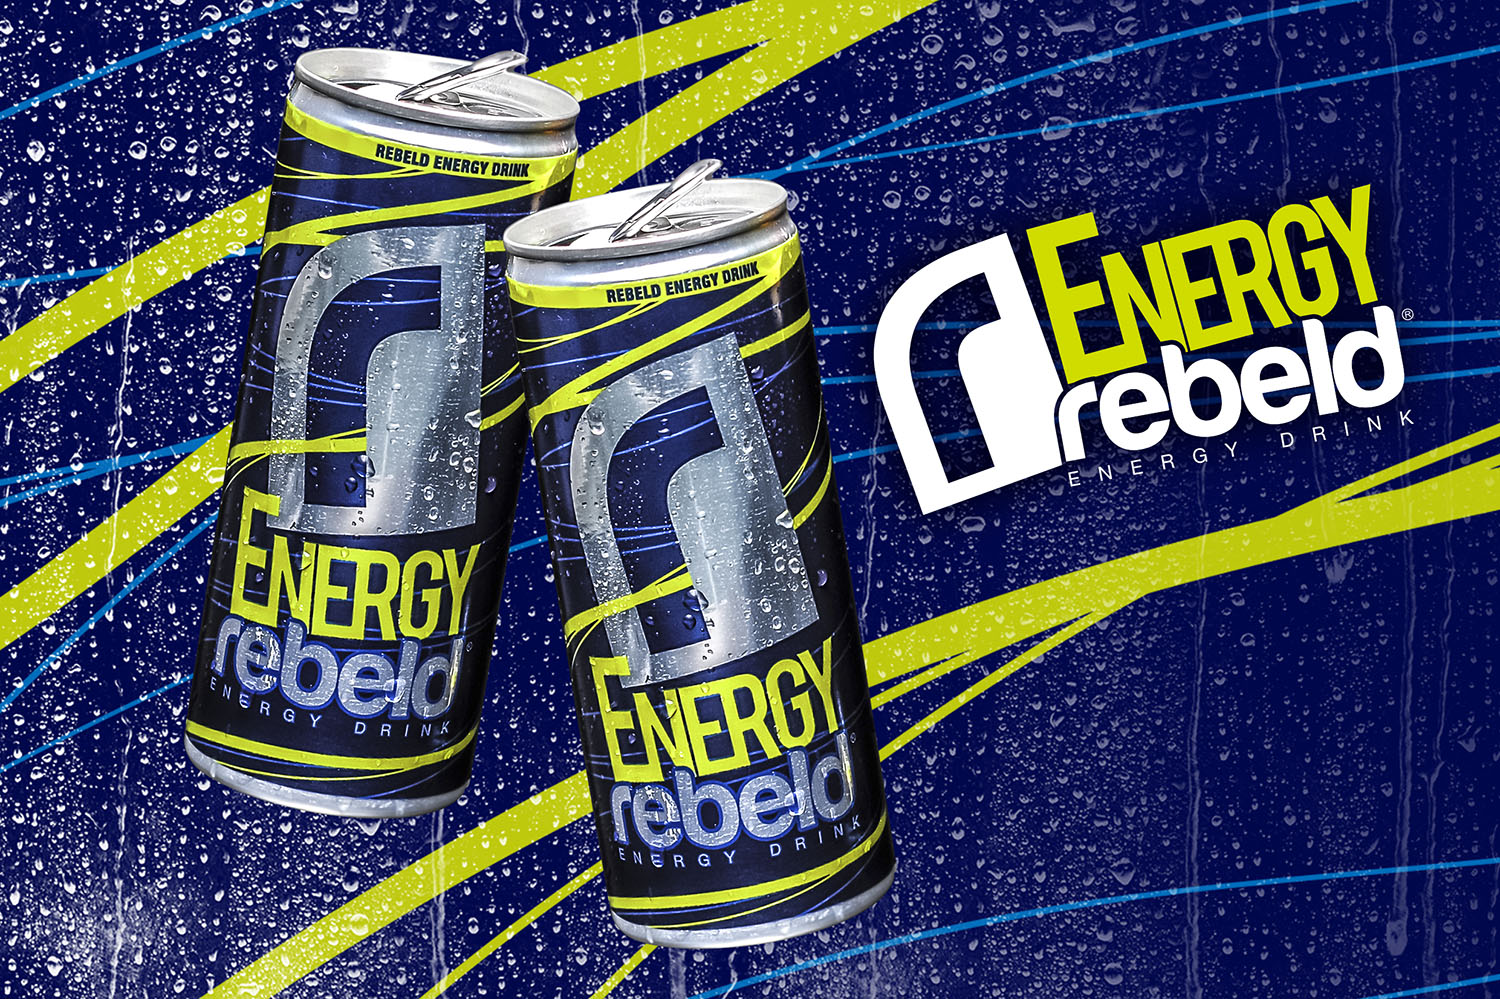 Rebeld Energy Drink